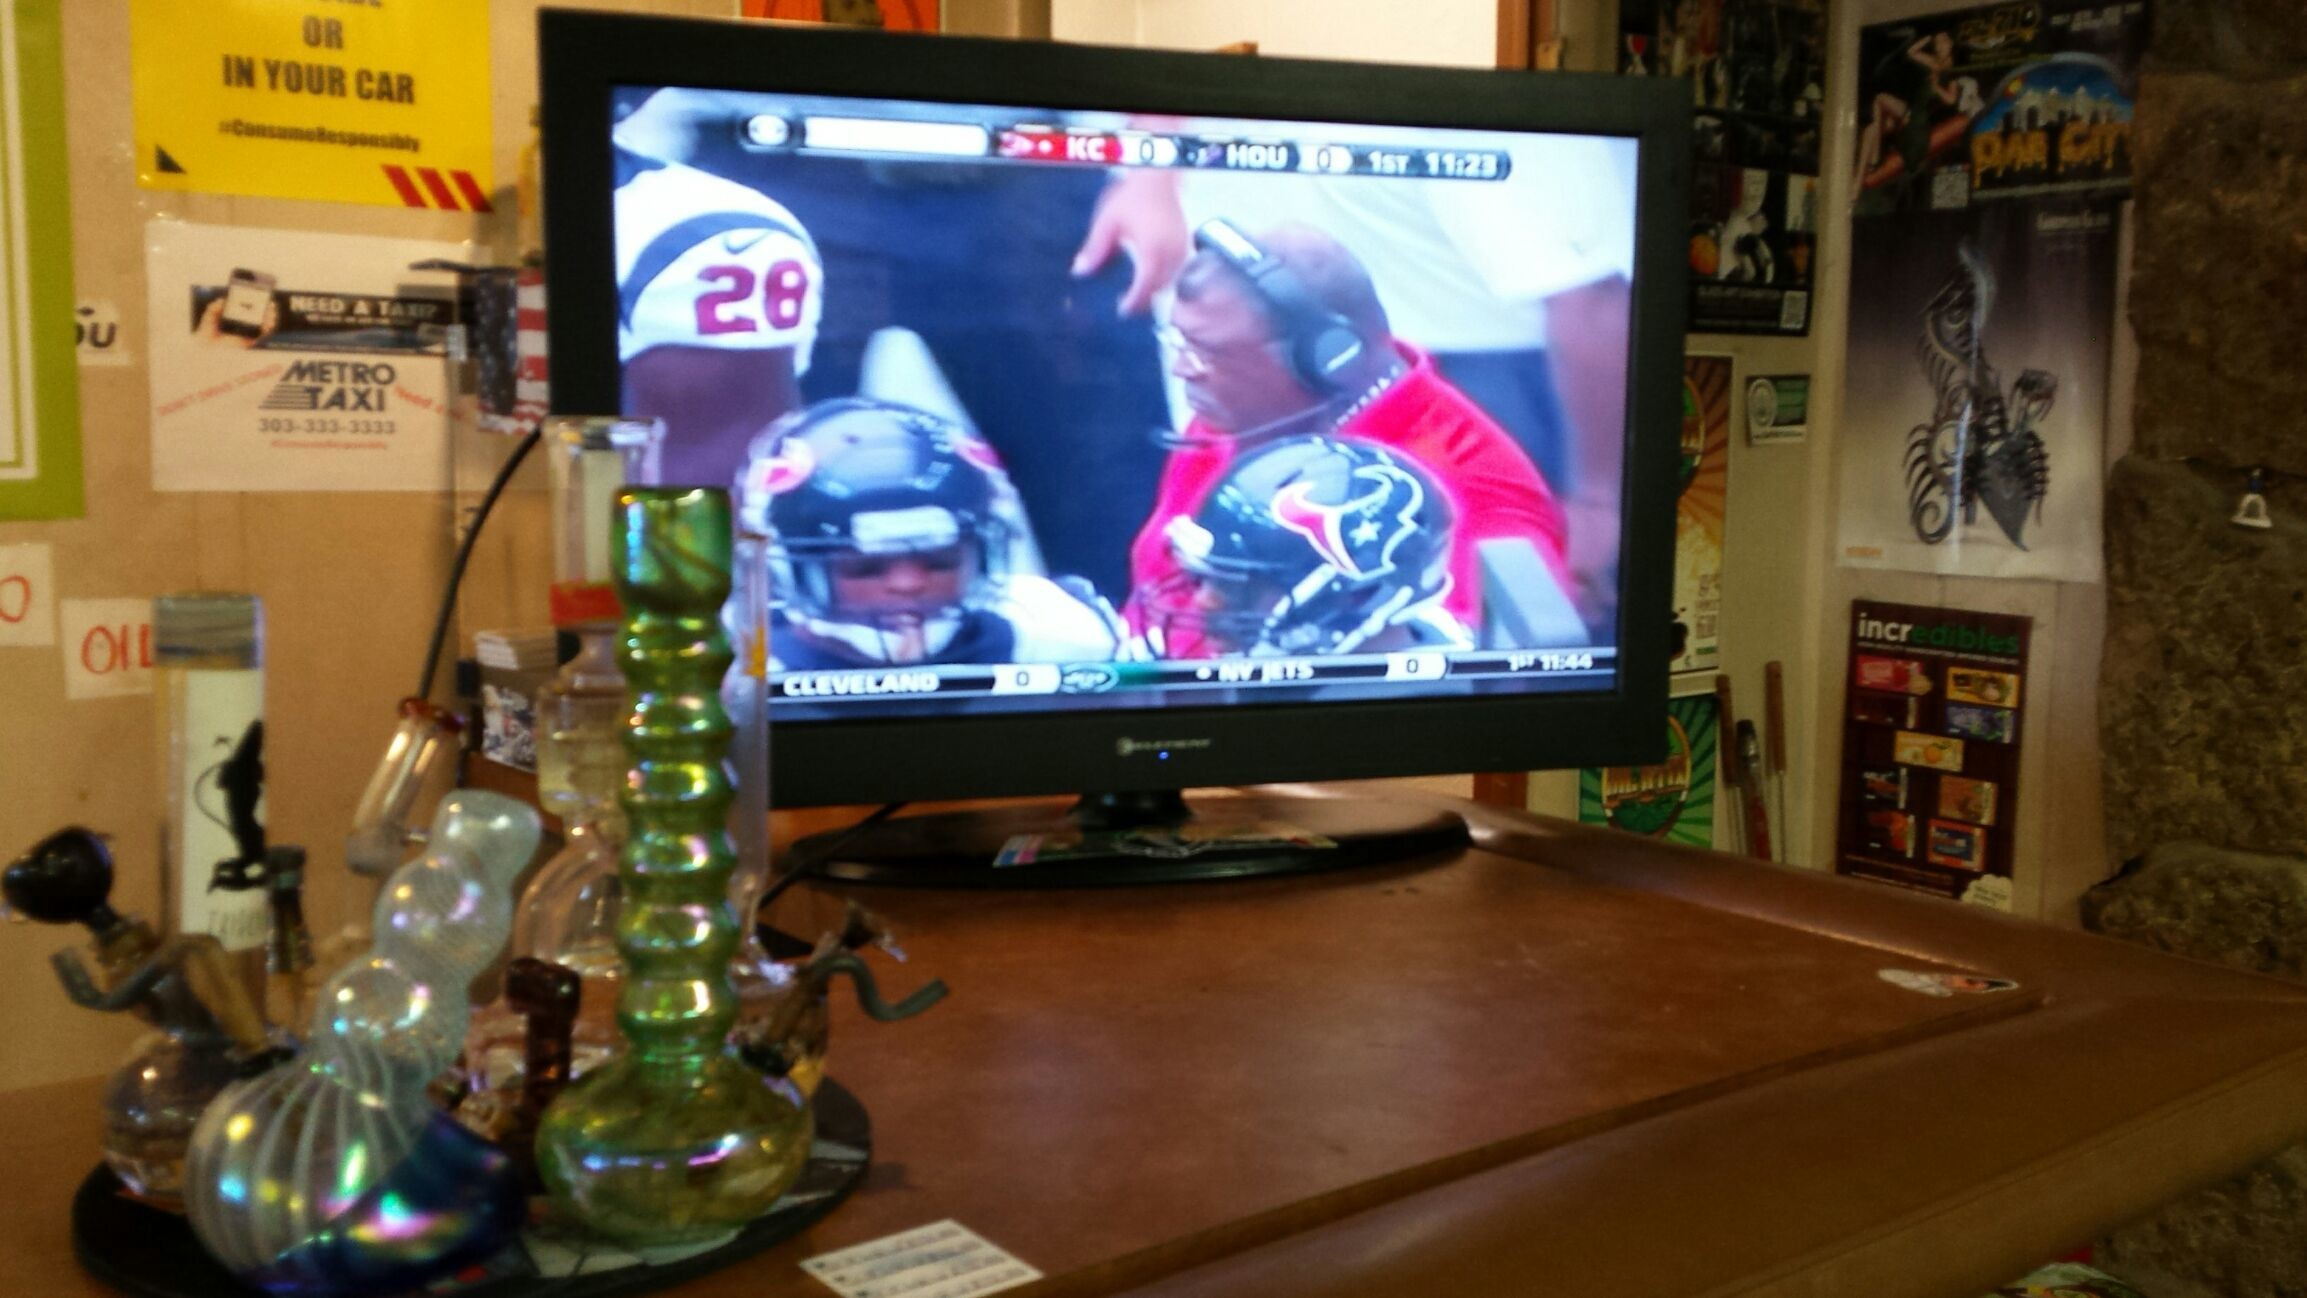 Bronco game starts at 2 p.m. Grab your weed and wax & come on down! #iBakeDenver #Dabs #Broncos